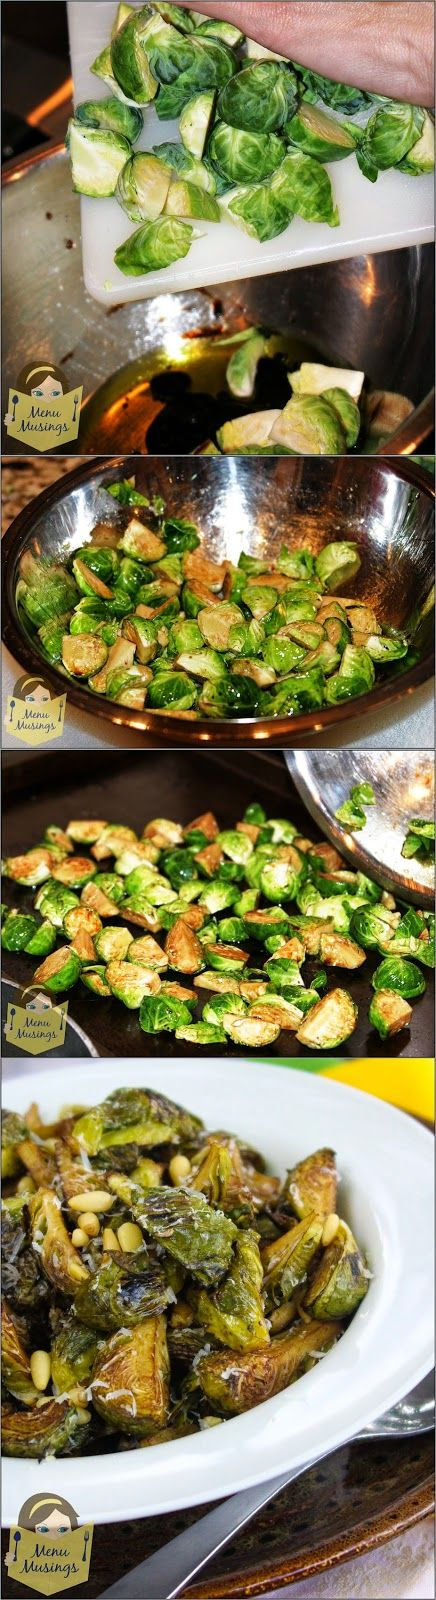 ... Brussel Sprots, Recipes With Pine Nuts, Roasted Brussels Sprouts, Menu